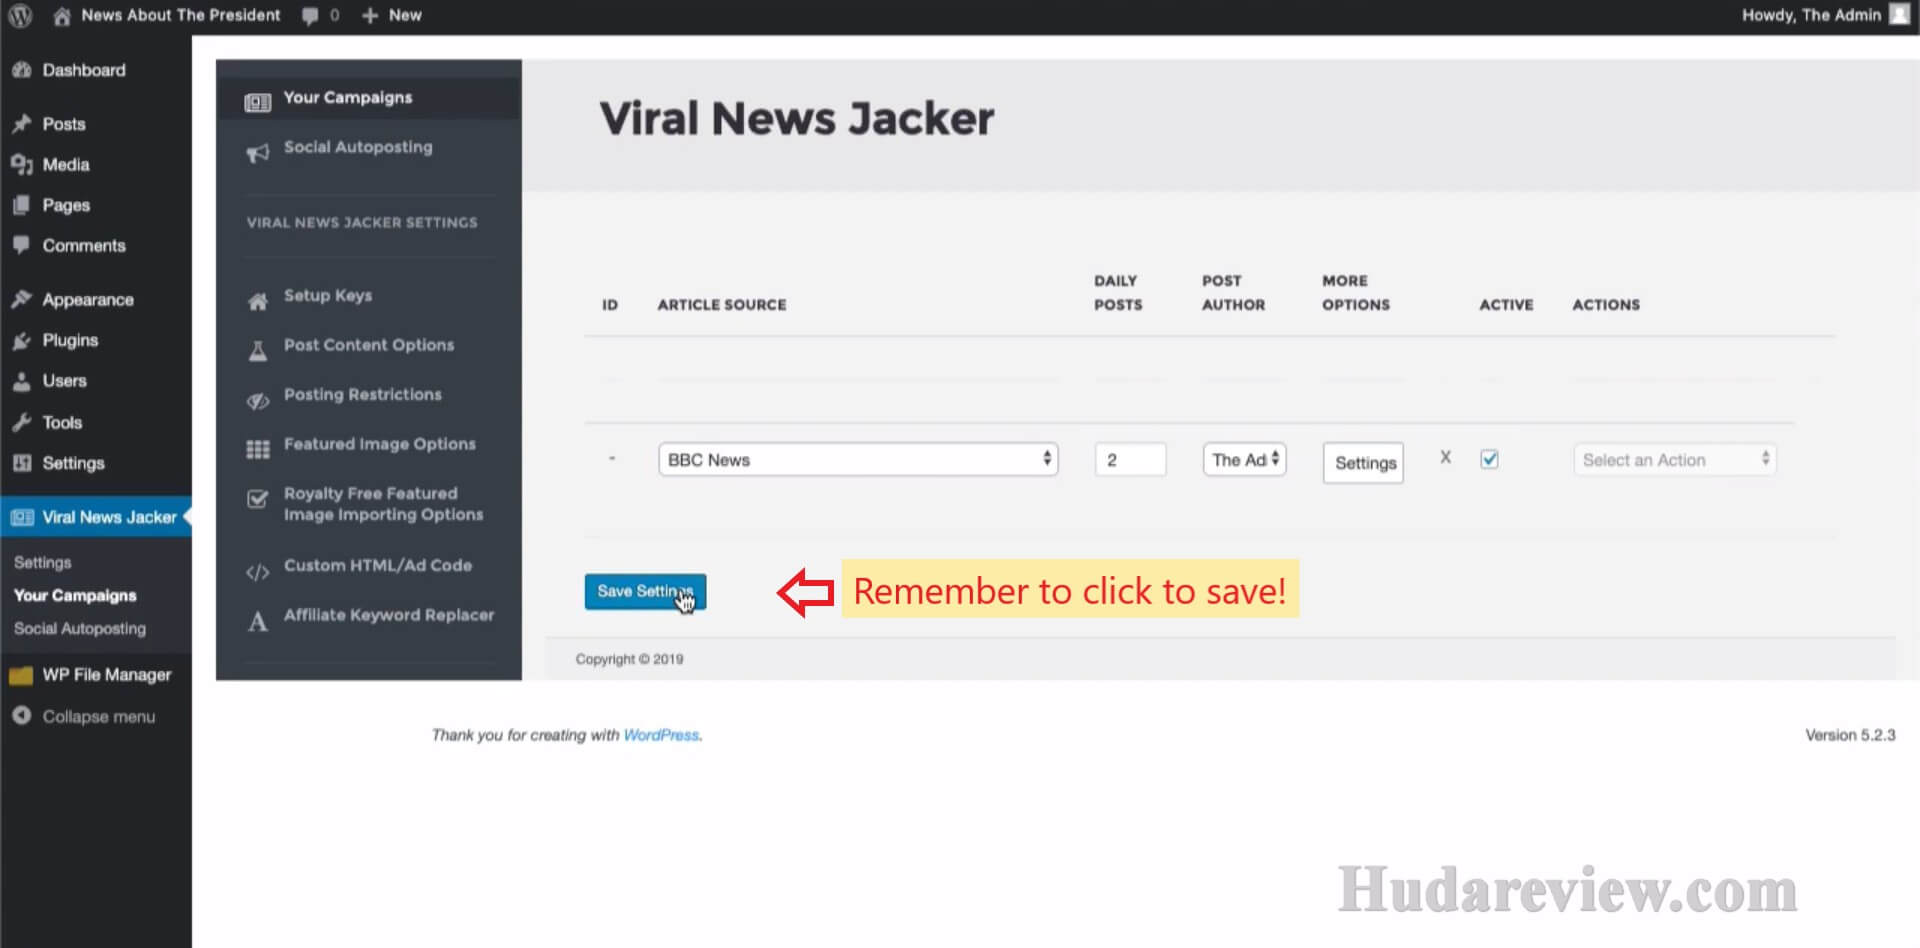 Viral-News-Jacker-Review-Step-5-5